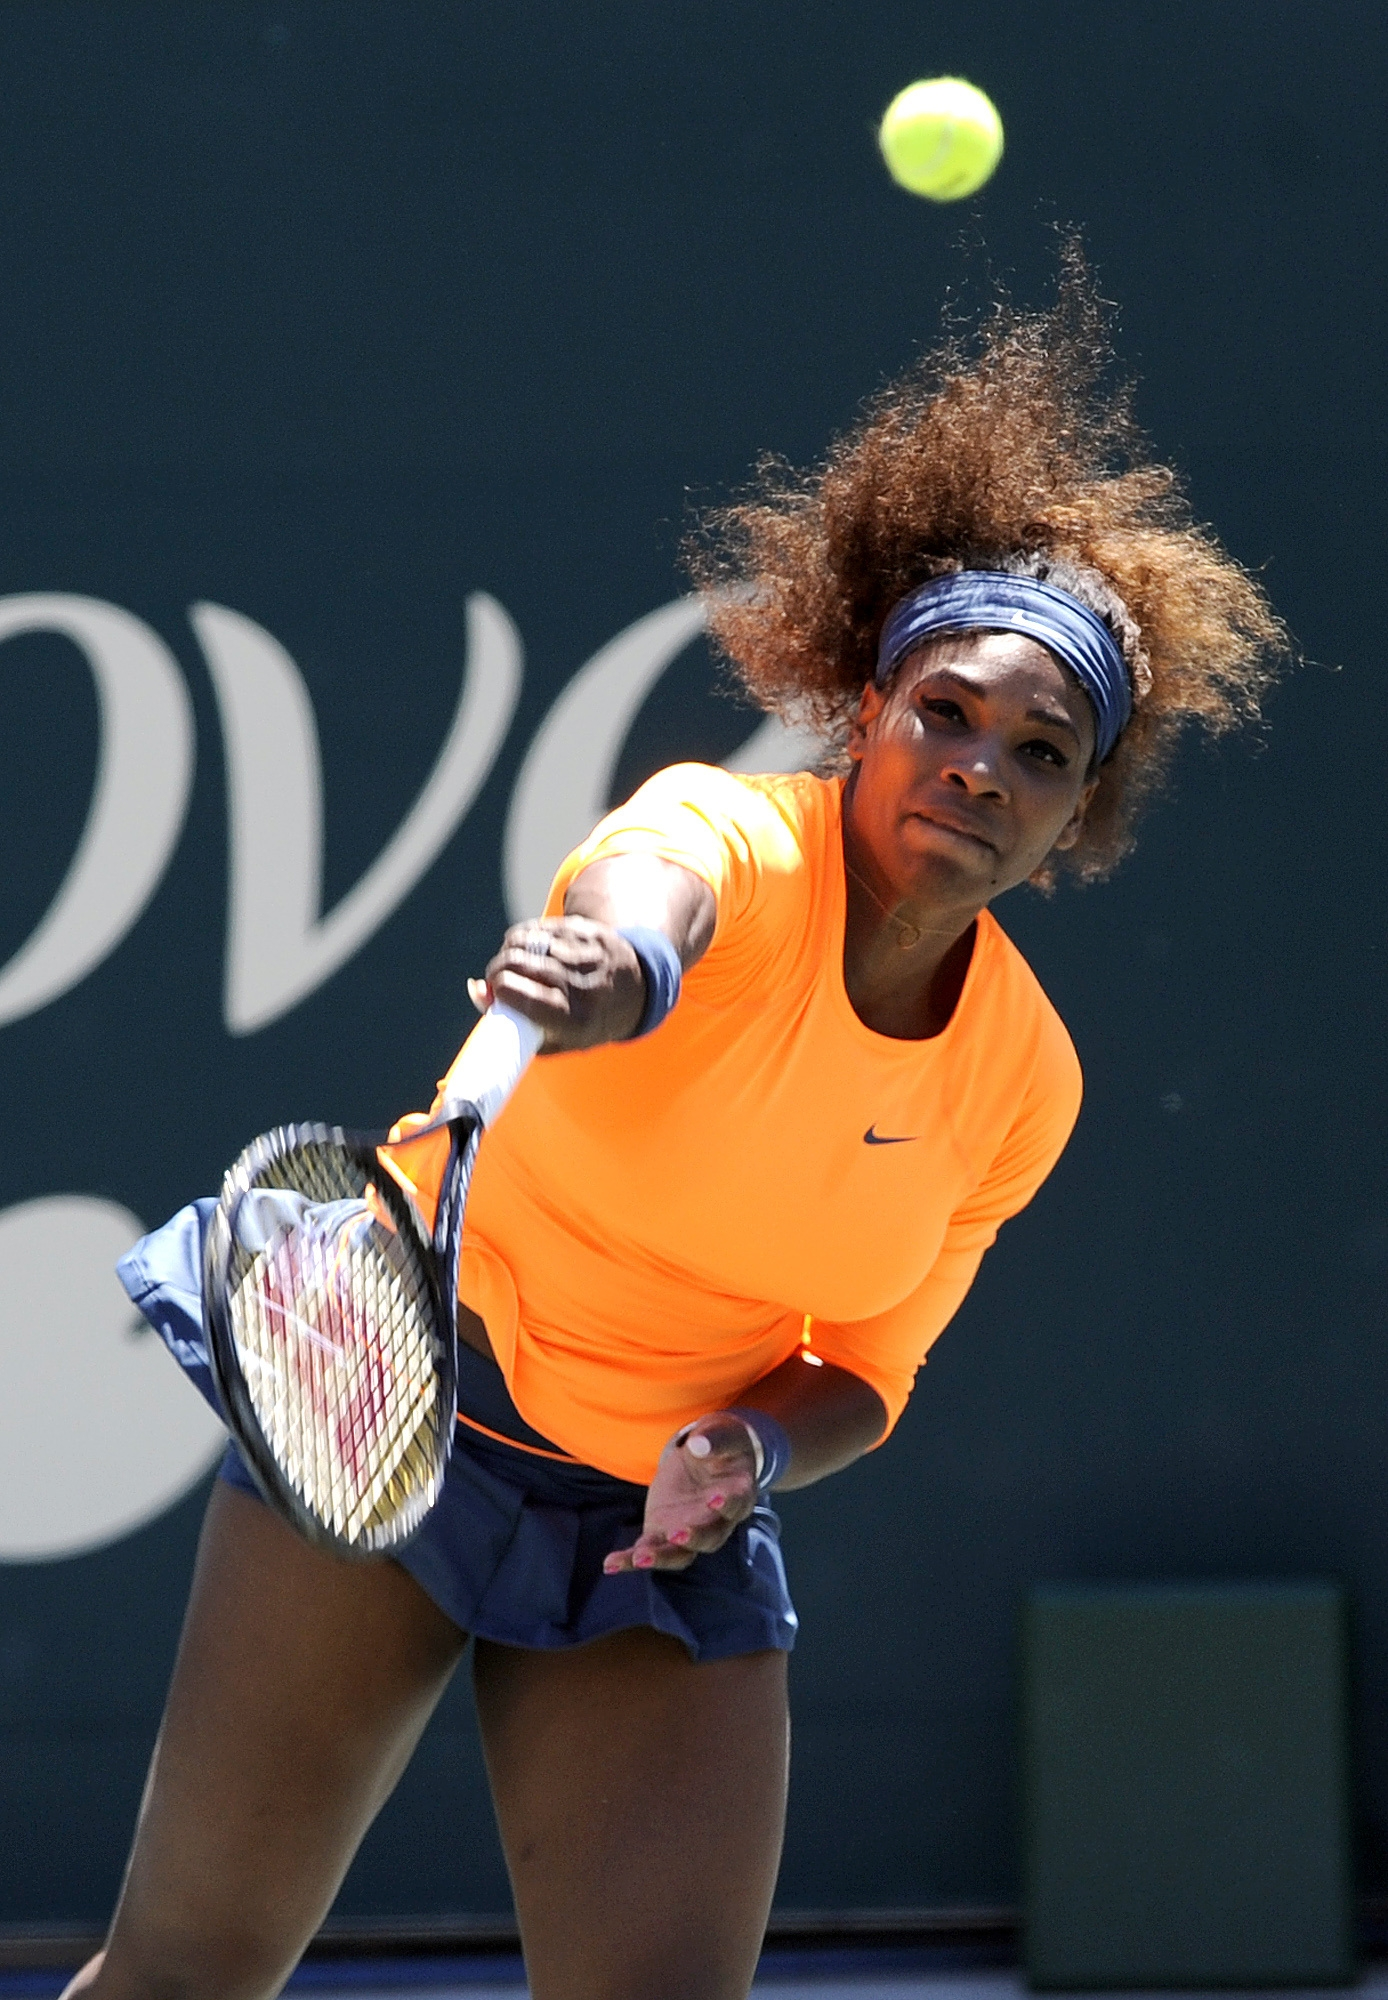 Professional tennis players like Serena Williams are successful because they know what shot to hit at the right time.